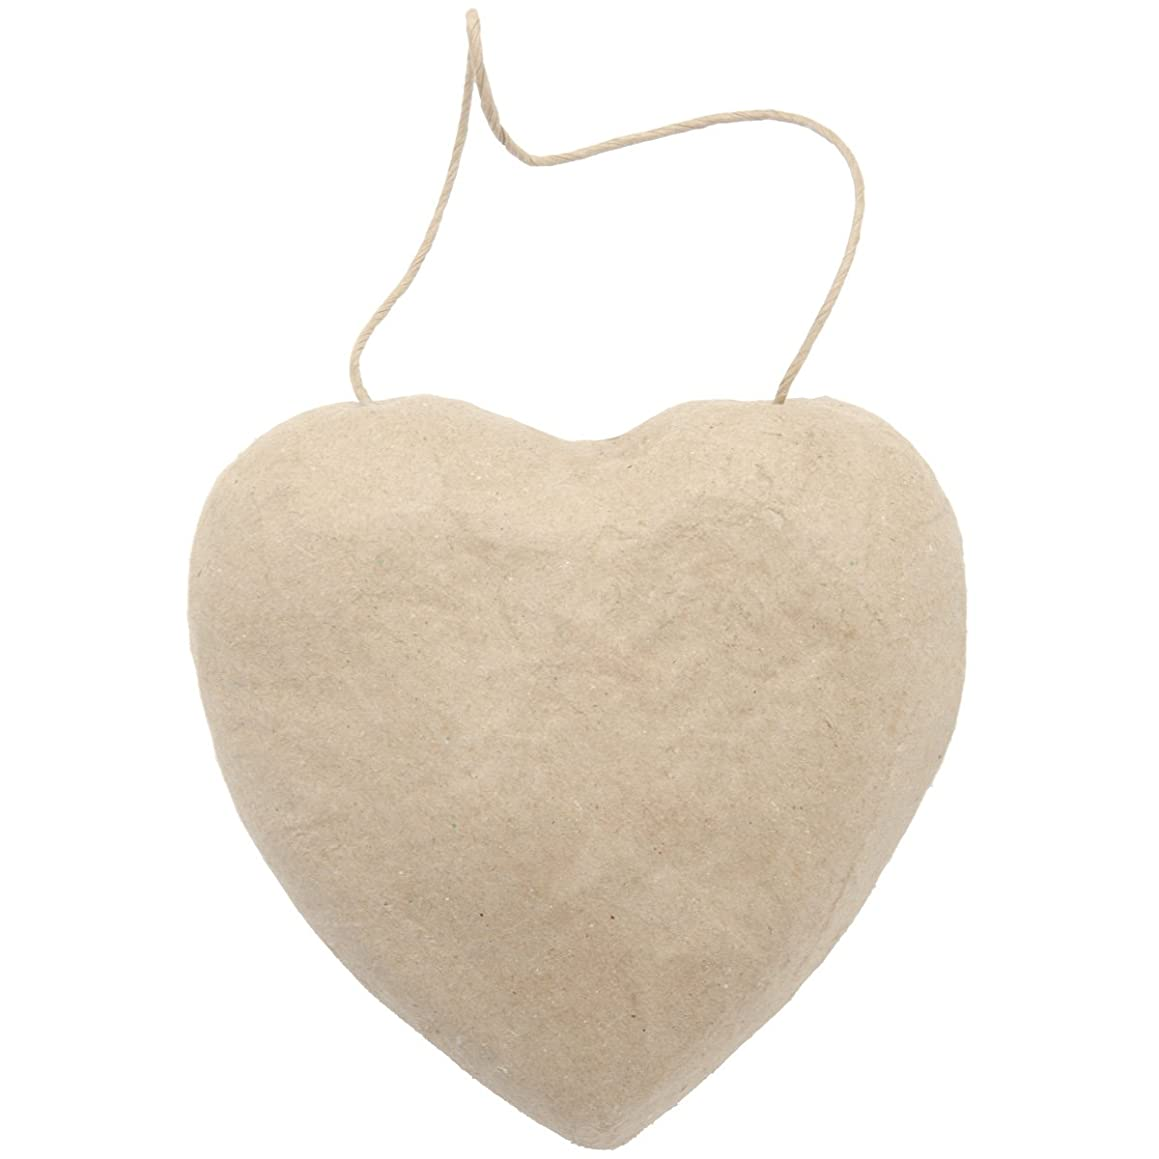 Darice 2833-44 Paper Mache Puffy Heart with String, 5.5-Inch